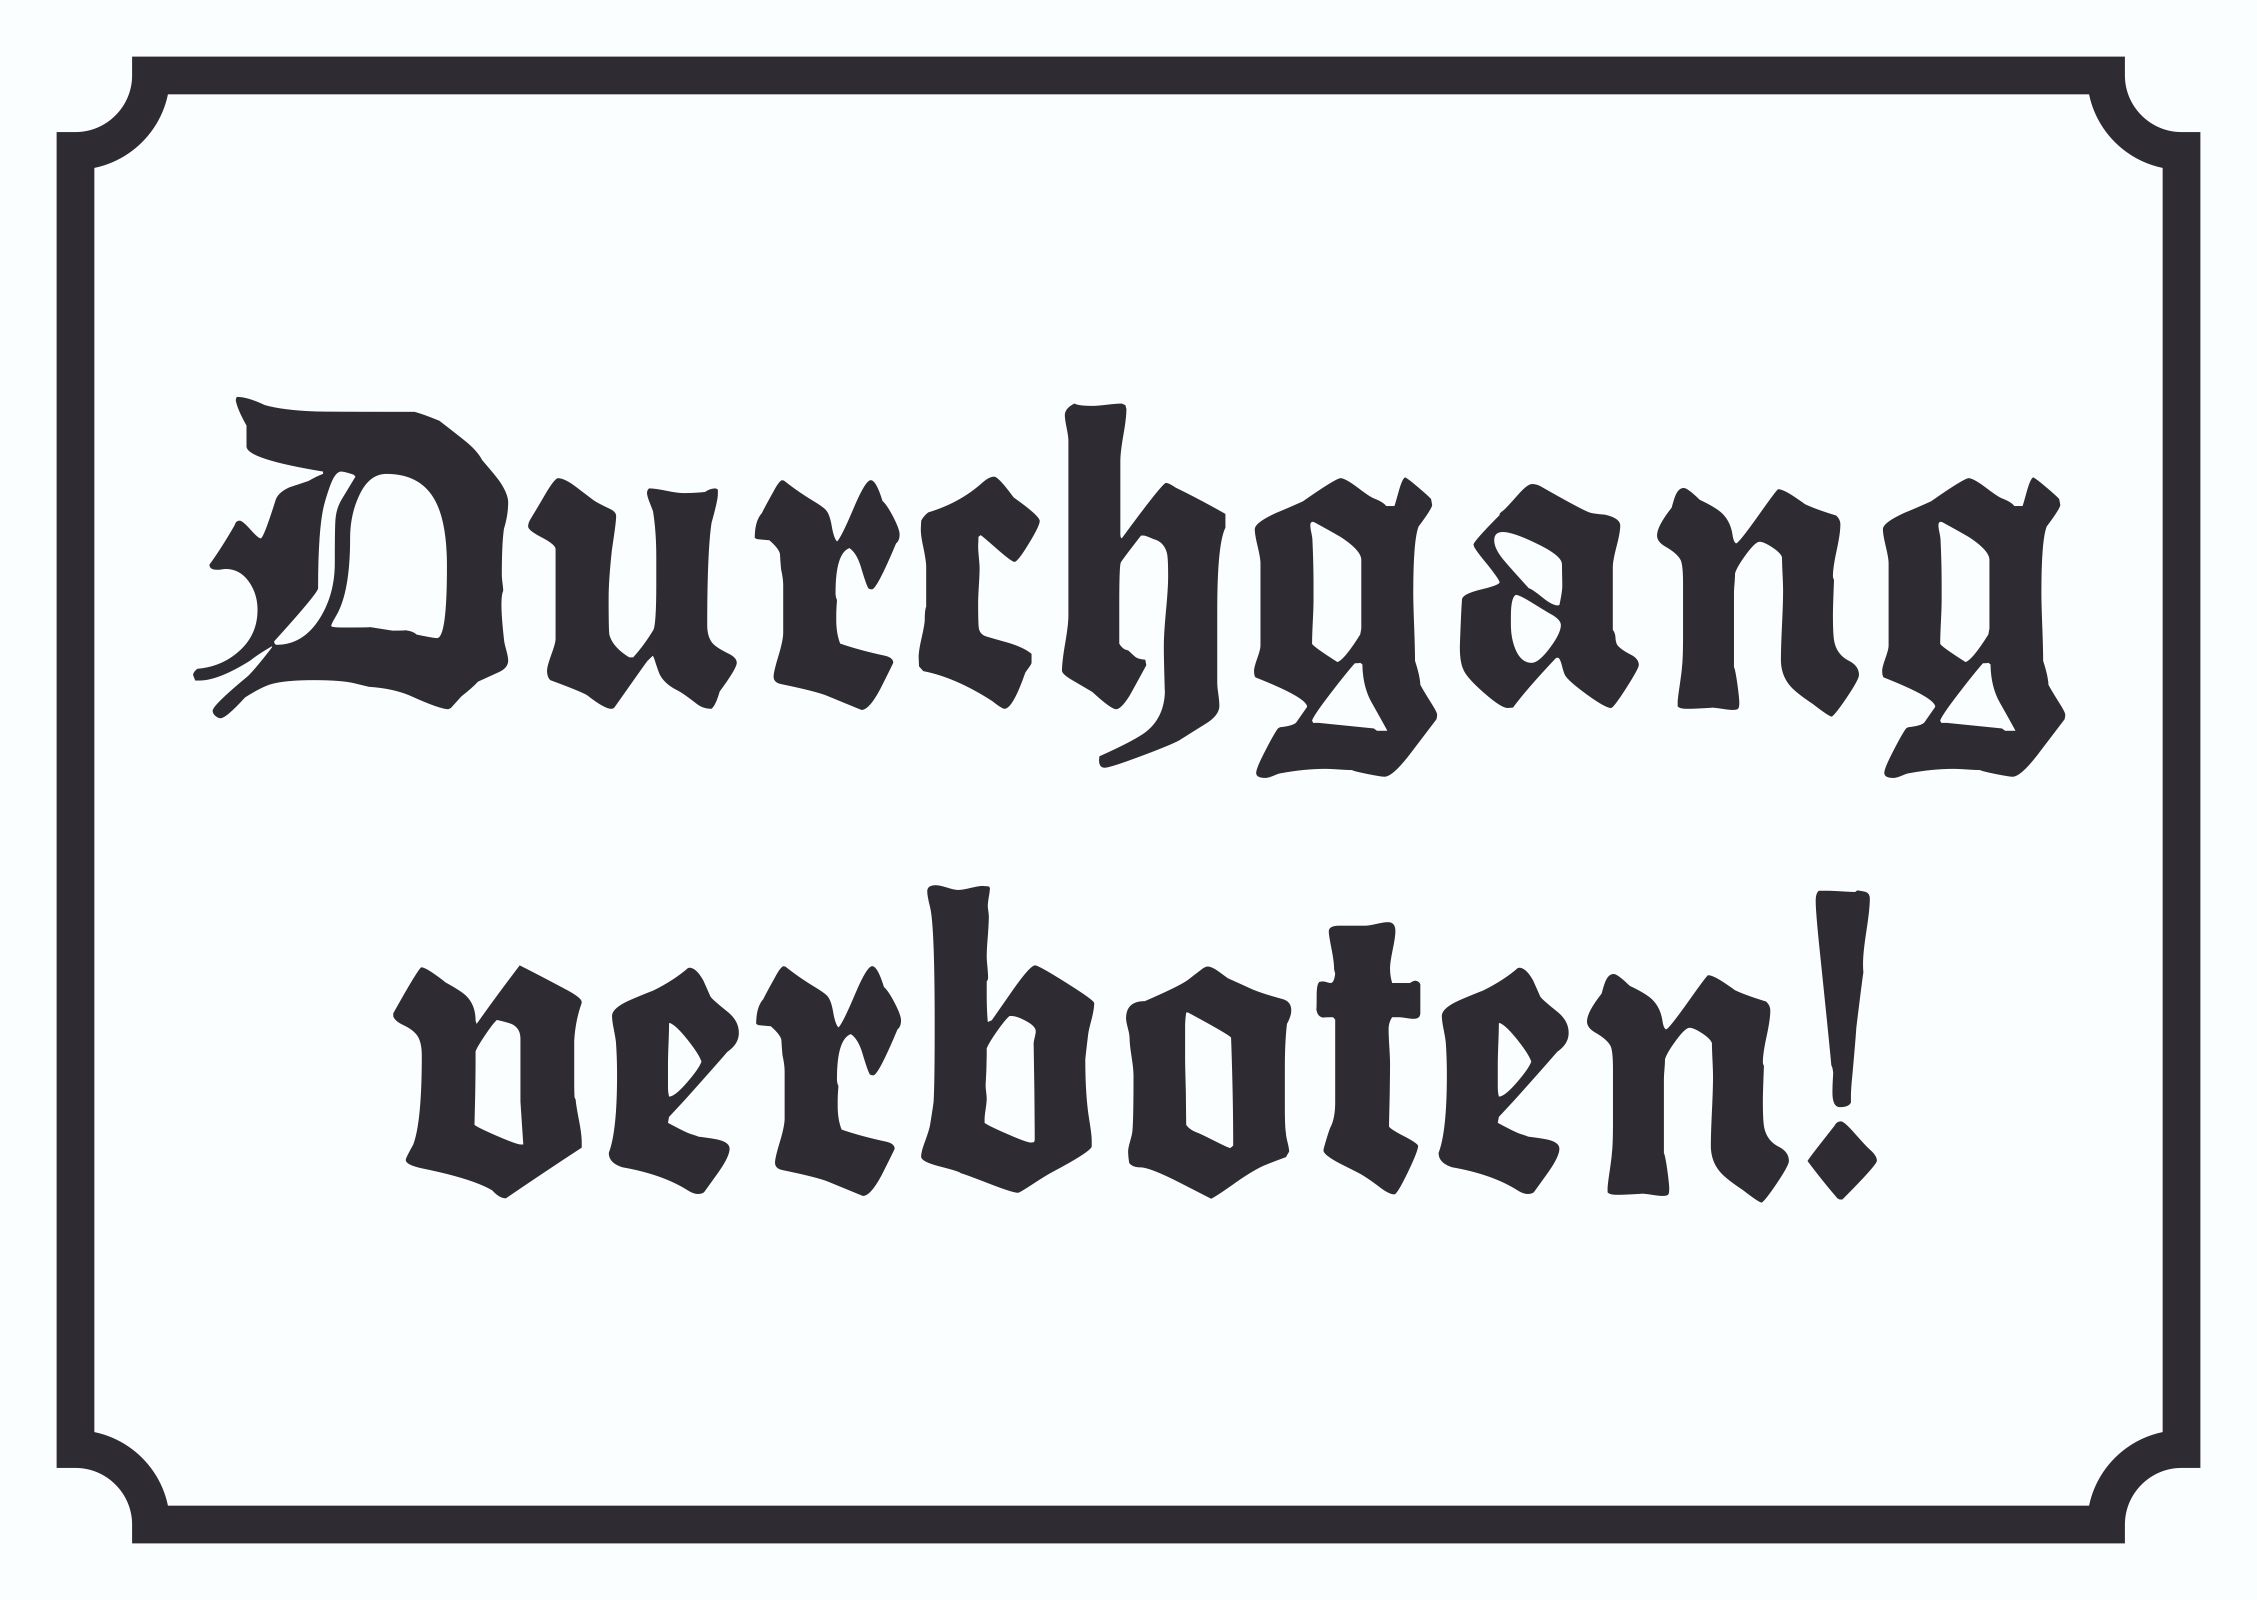 durchgang verboten schild in altdeutscher schrift hb druck schilder textildruck stickerei. Black Bedroom Furniture Sets. Home Design Ideas